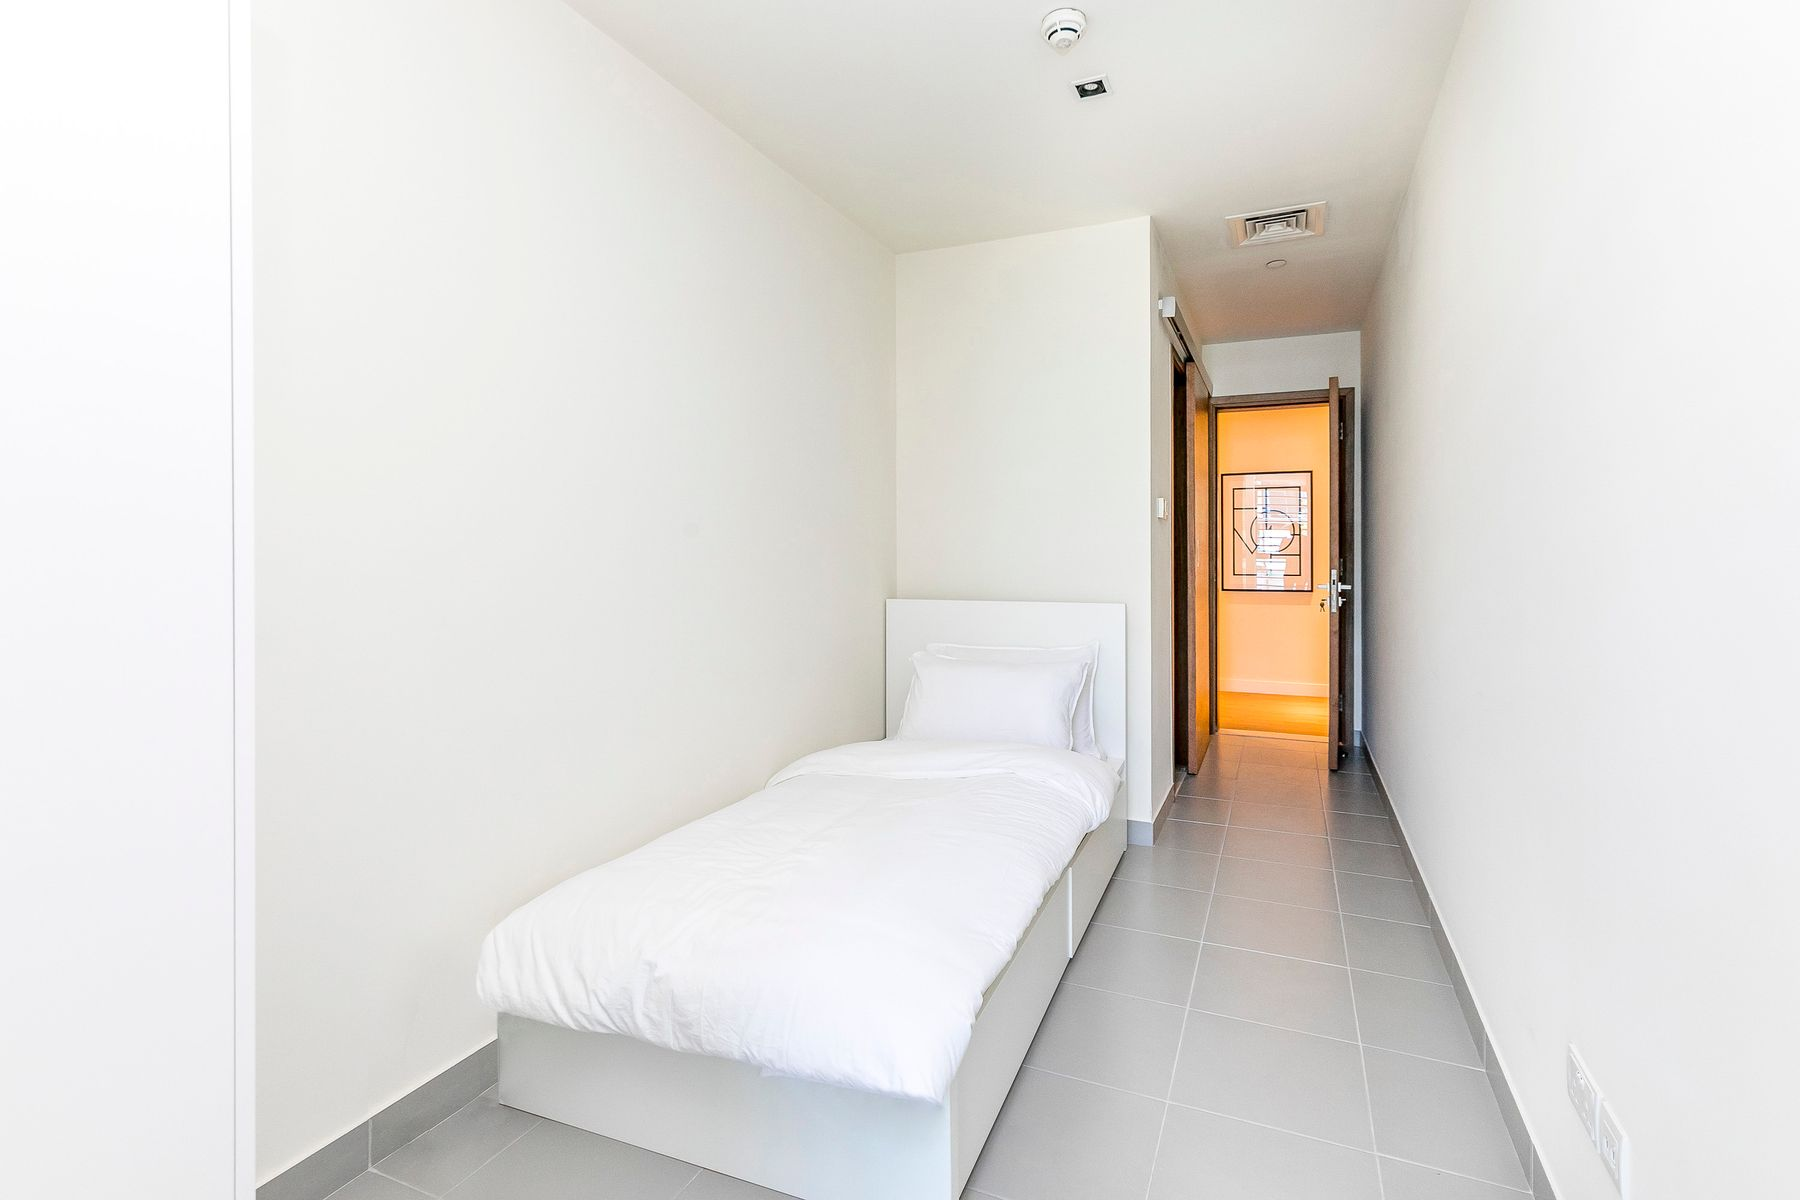 Apartment for Rent in Building 11A, City Walk